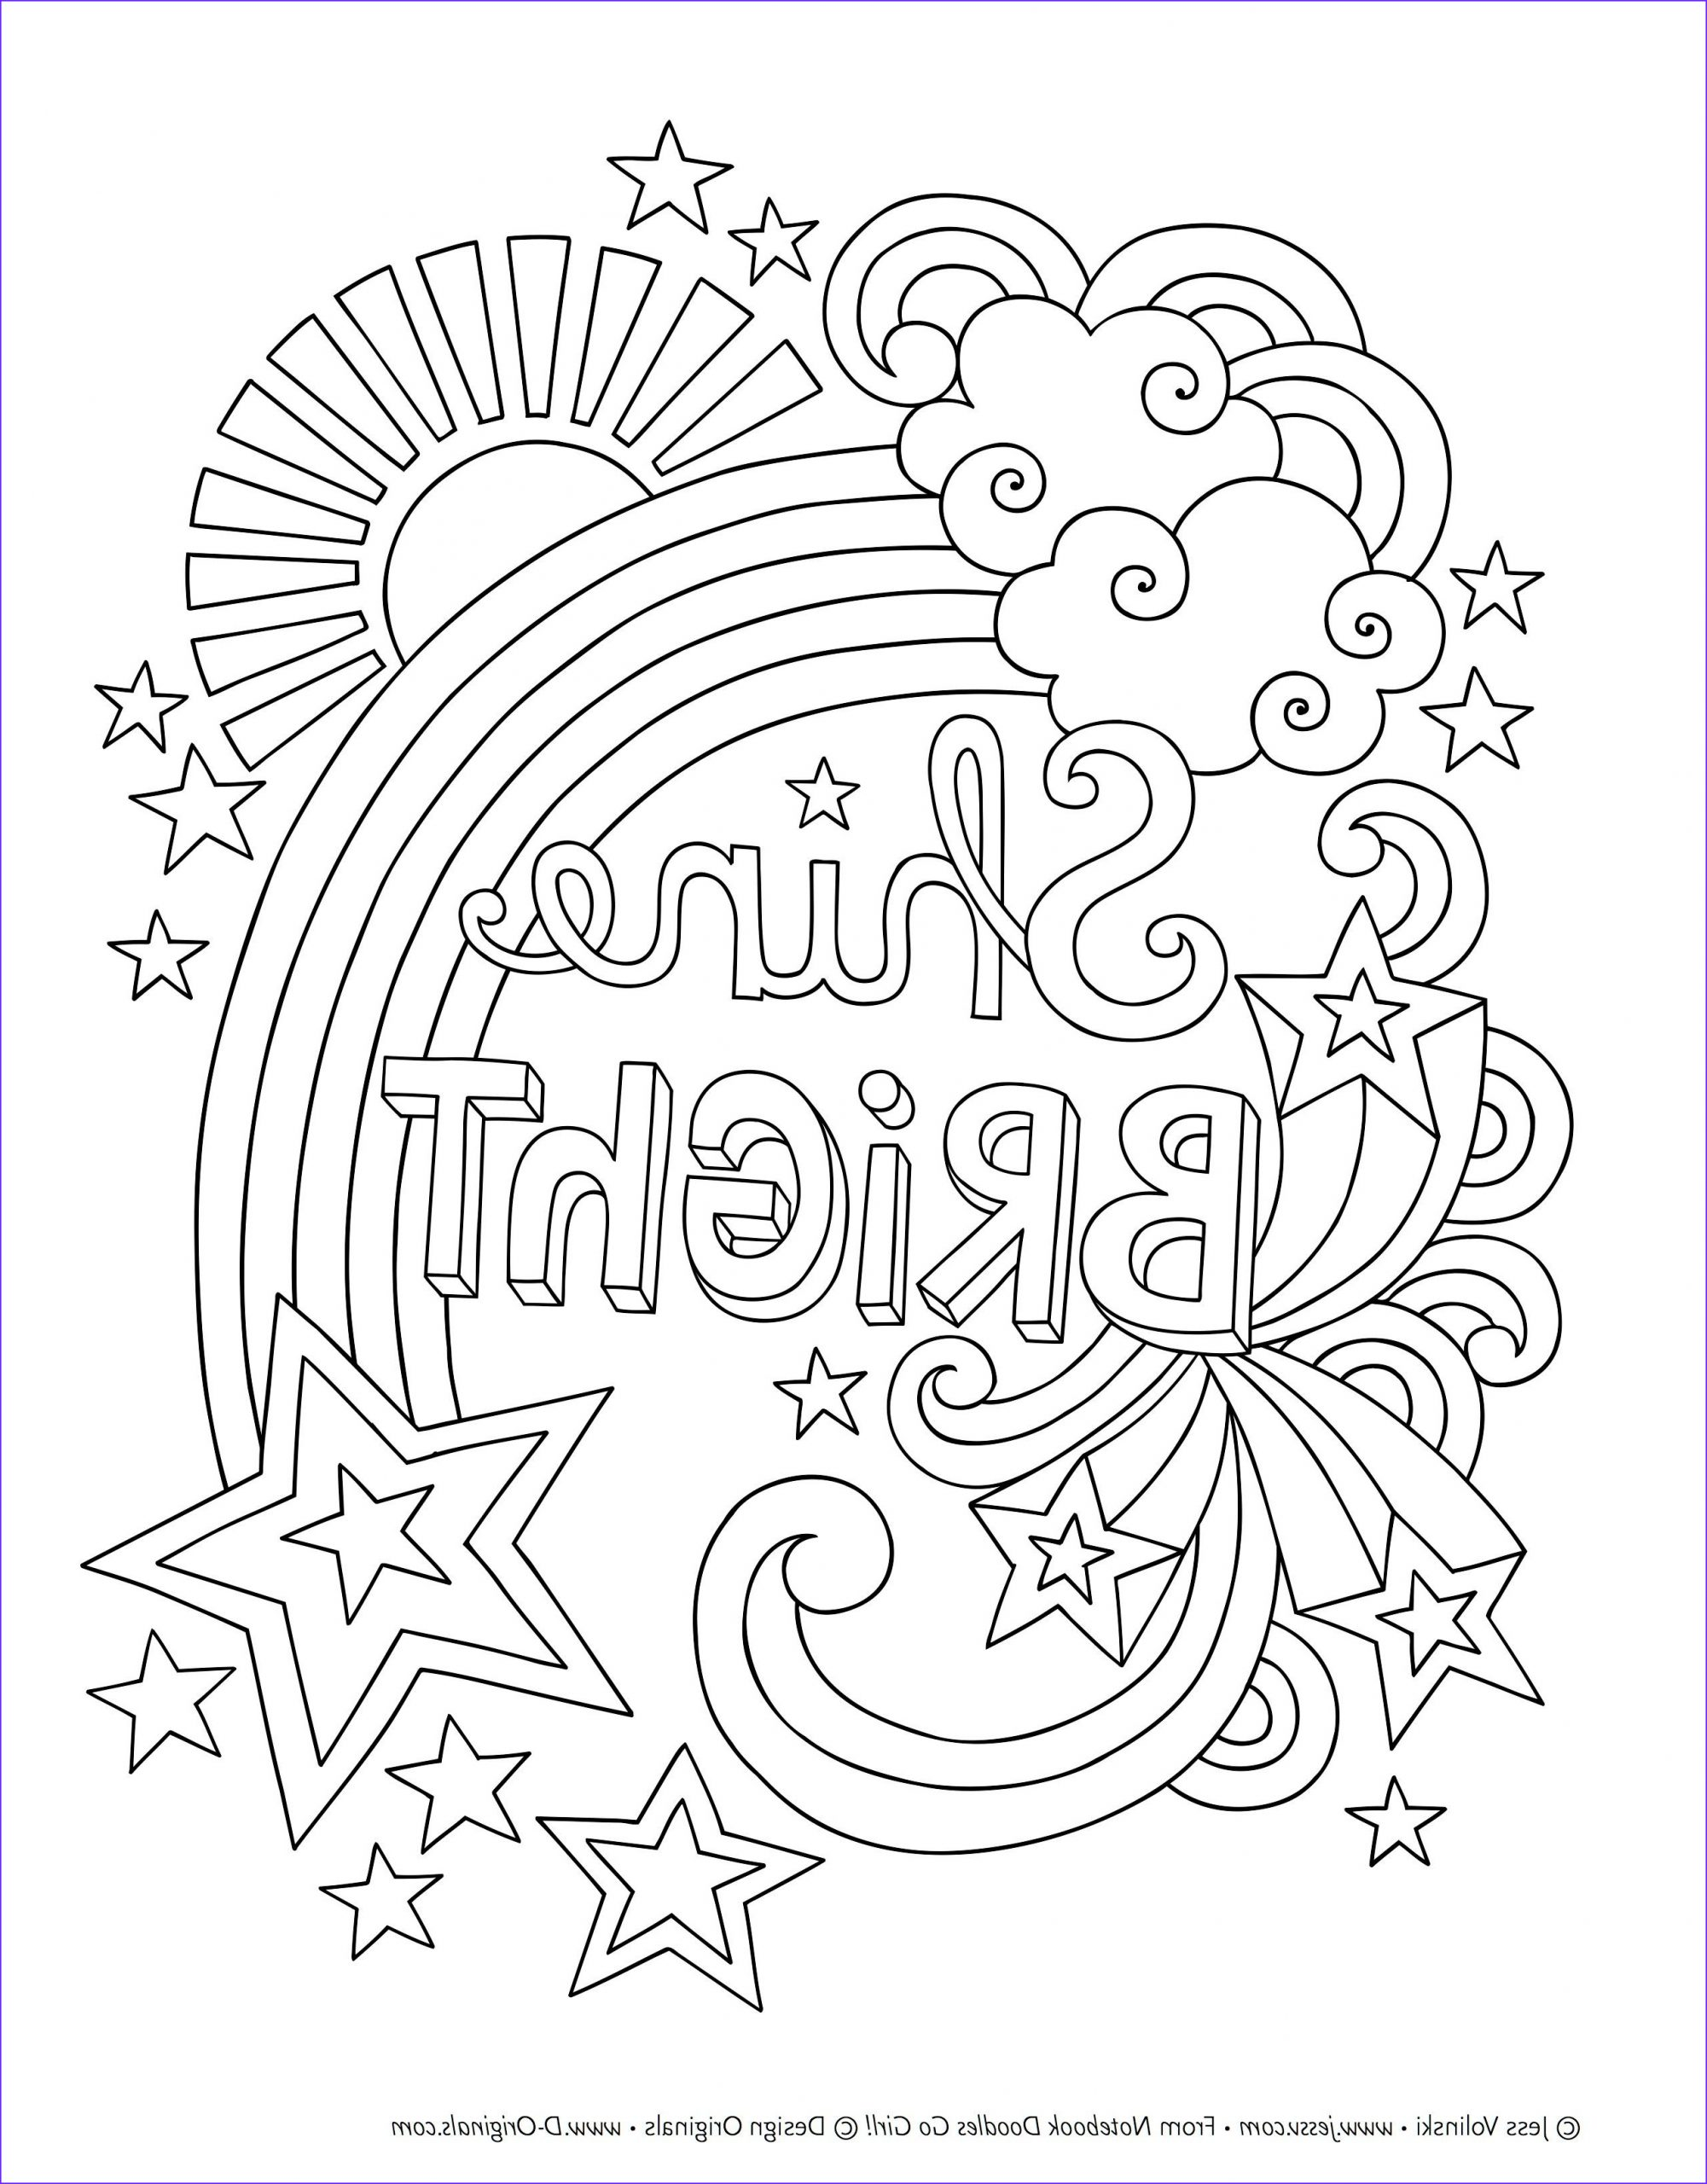 Free Printable Coloring Page For Older Girl Elegant Photos Notebook Doodles Go Girl Coloring & Activity Book